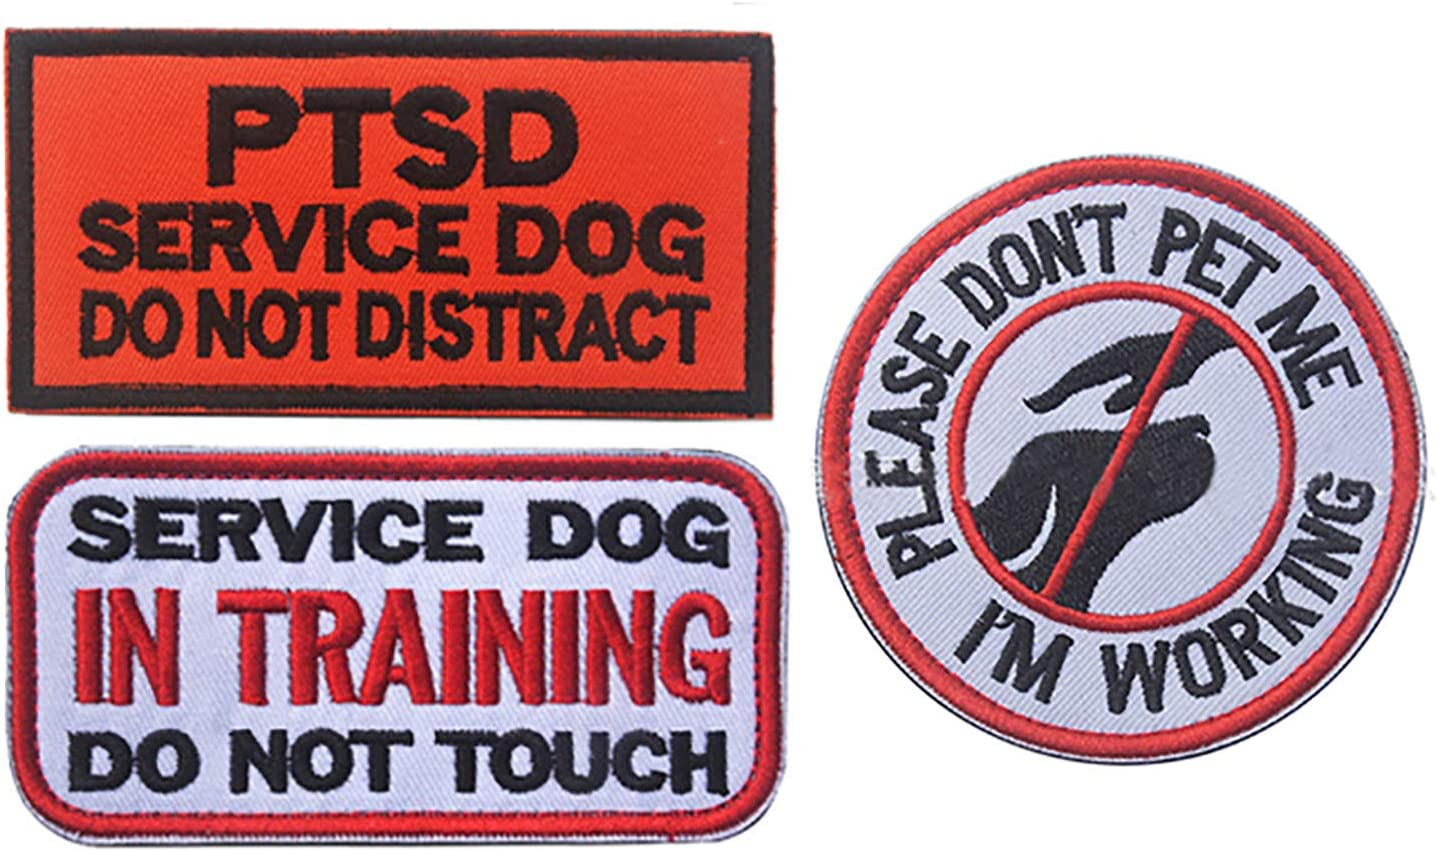 3 Pcs Service Dog Morale Badge Embroidereed Dog Patches Working in Training Do Not Touch Hound Travel Hiking Backpack Saddlebags//Morale Service Dog Patches for Pet Tactical Harness Vest DBG1-3P-1